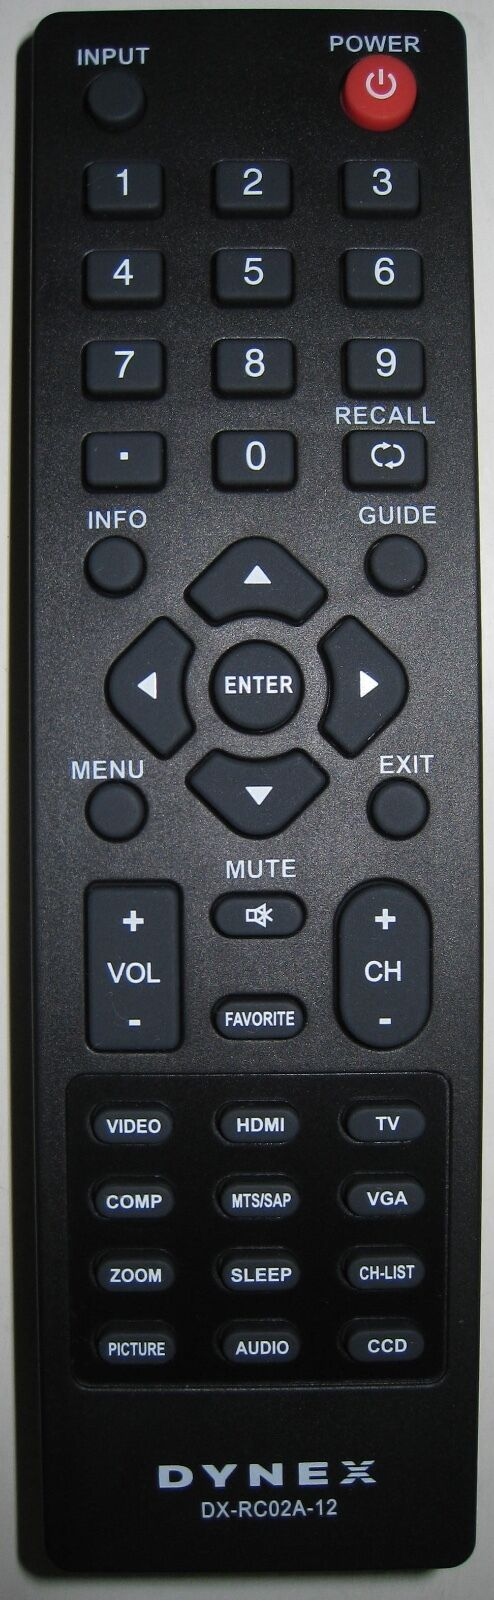 Brand New Original DX-RC02A-12 LCD TV Remote Control For DYN